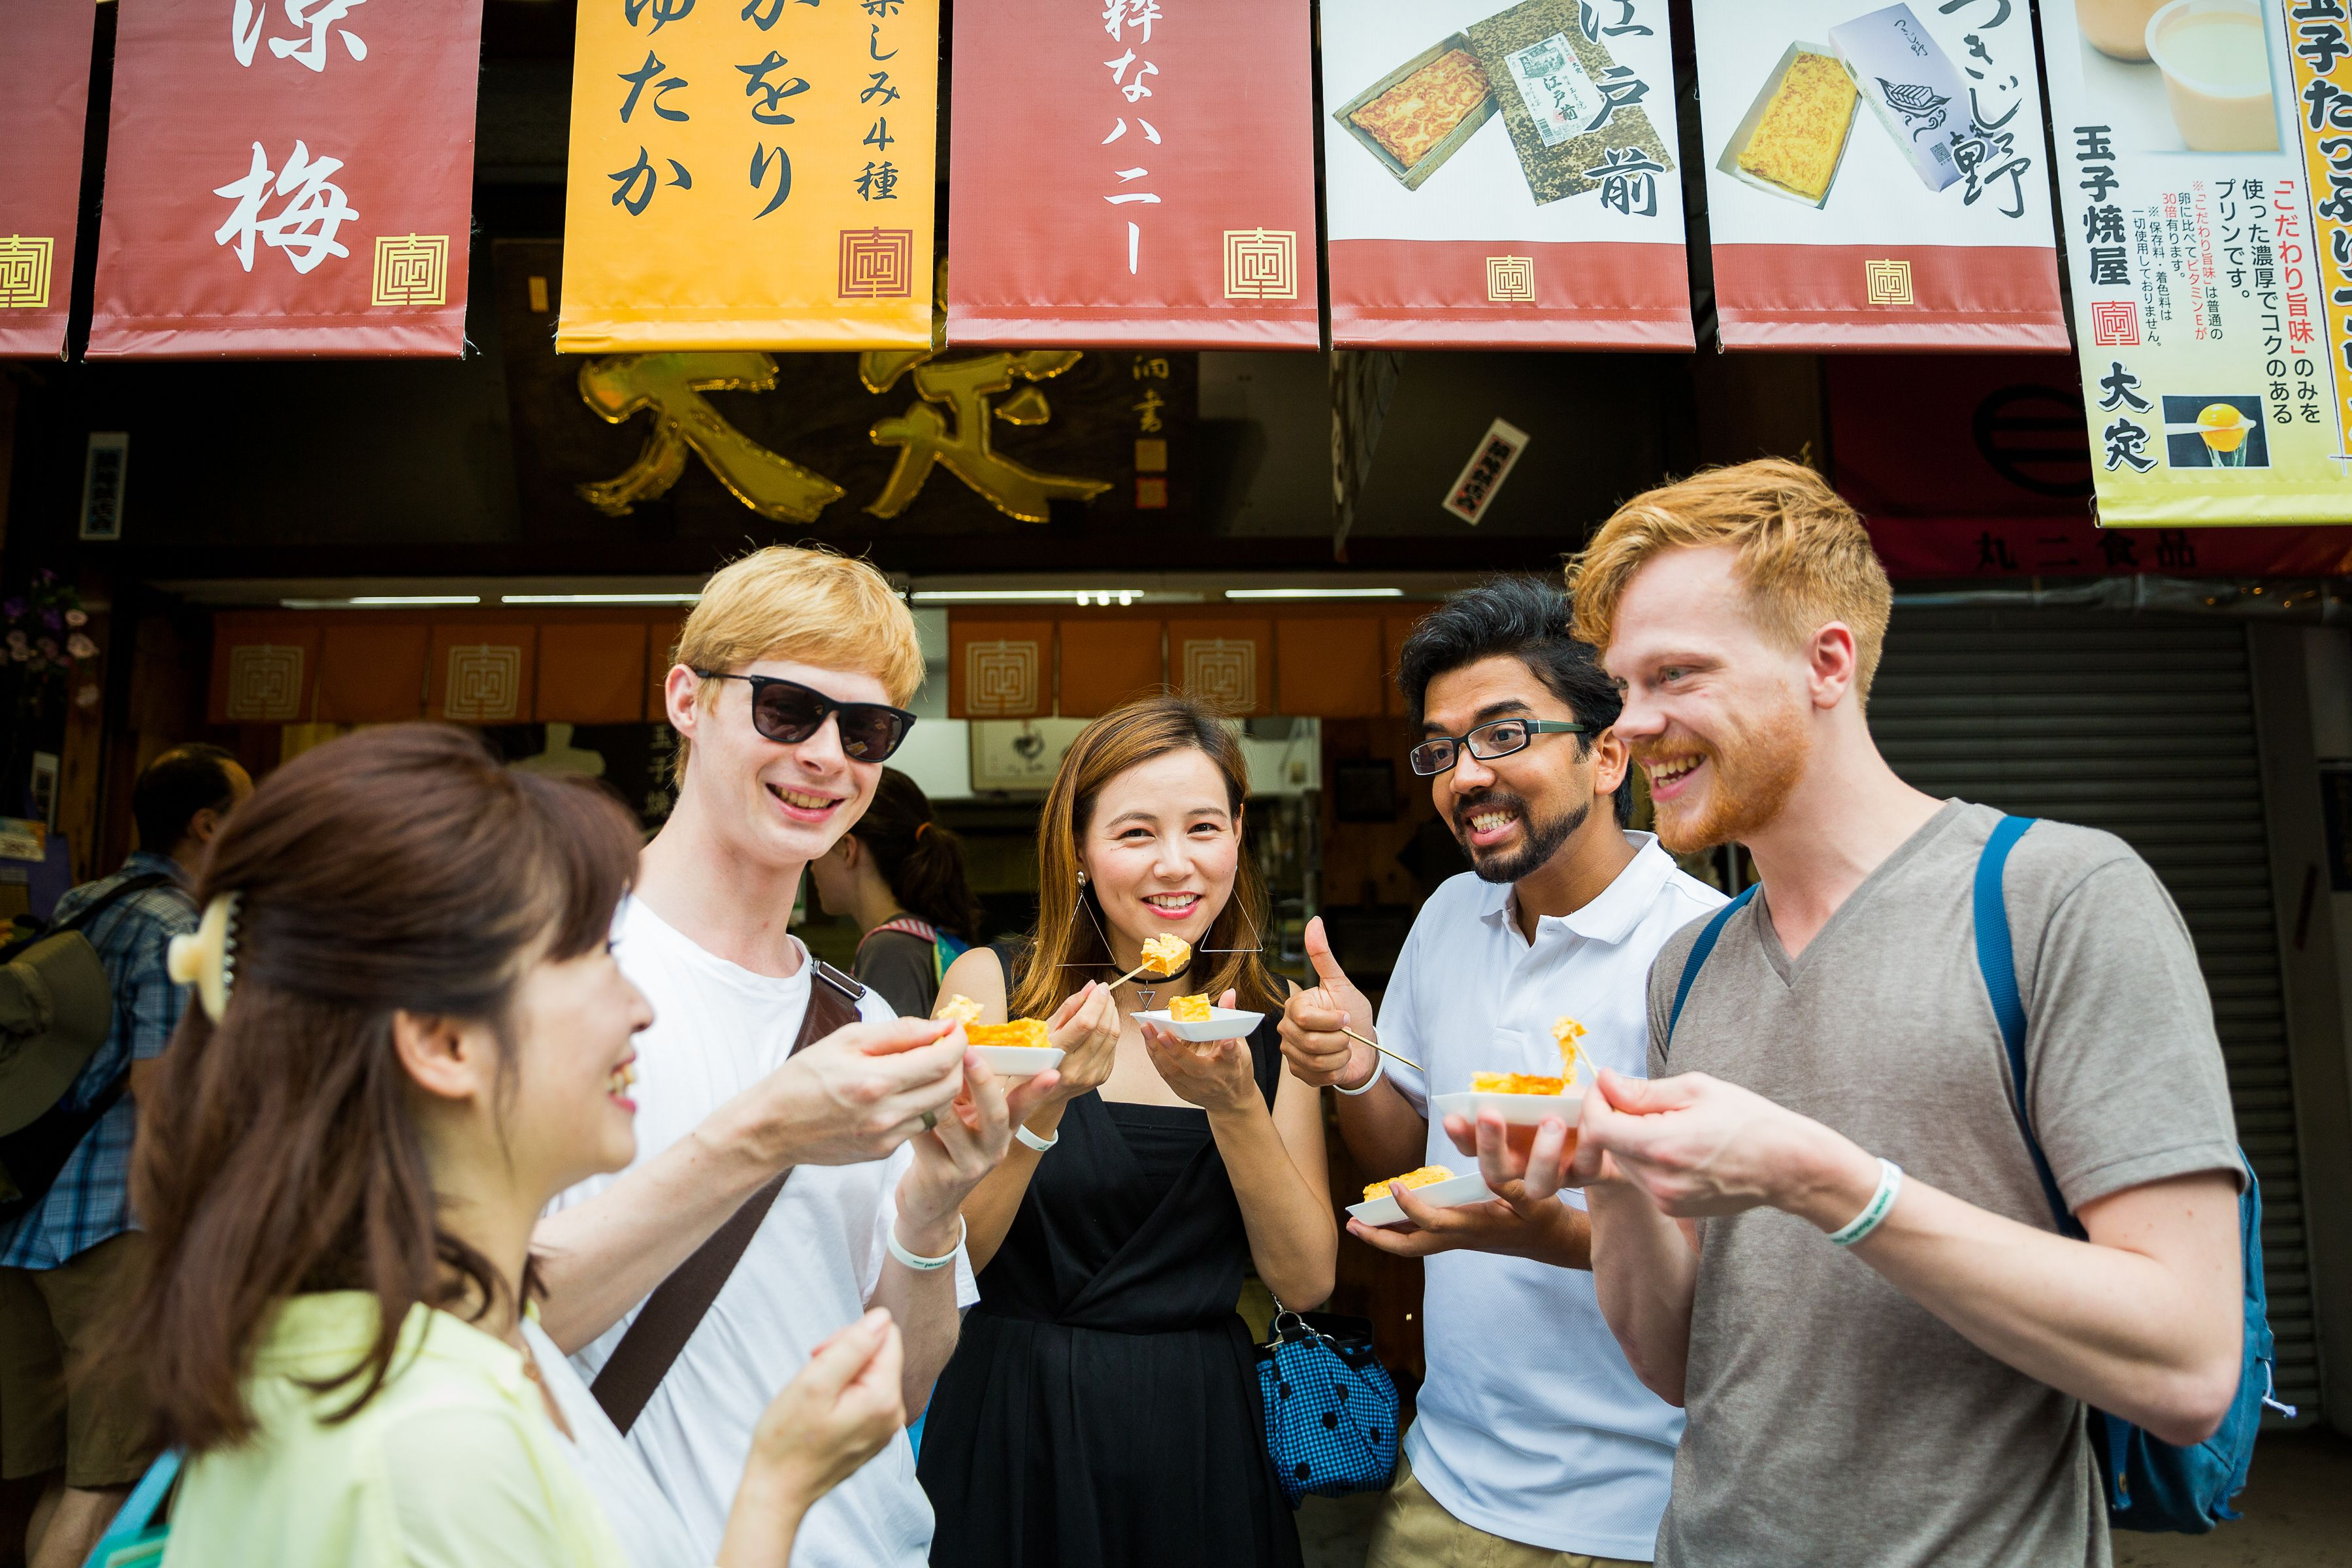 Group tasting delicious Japanese foods in Ch??, Japan